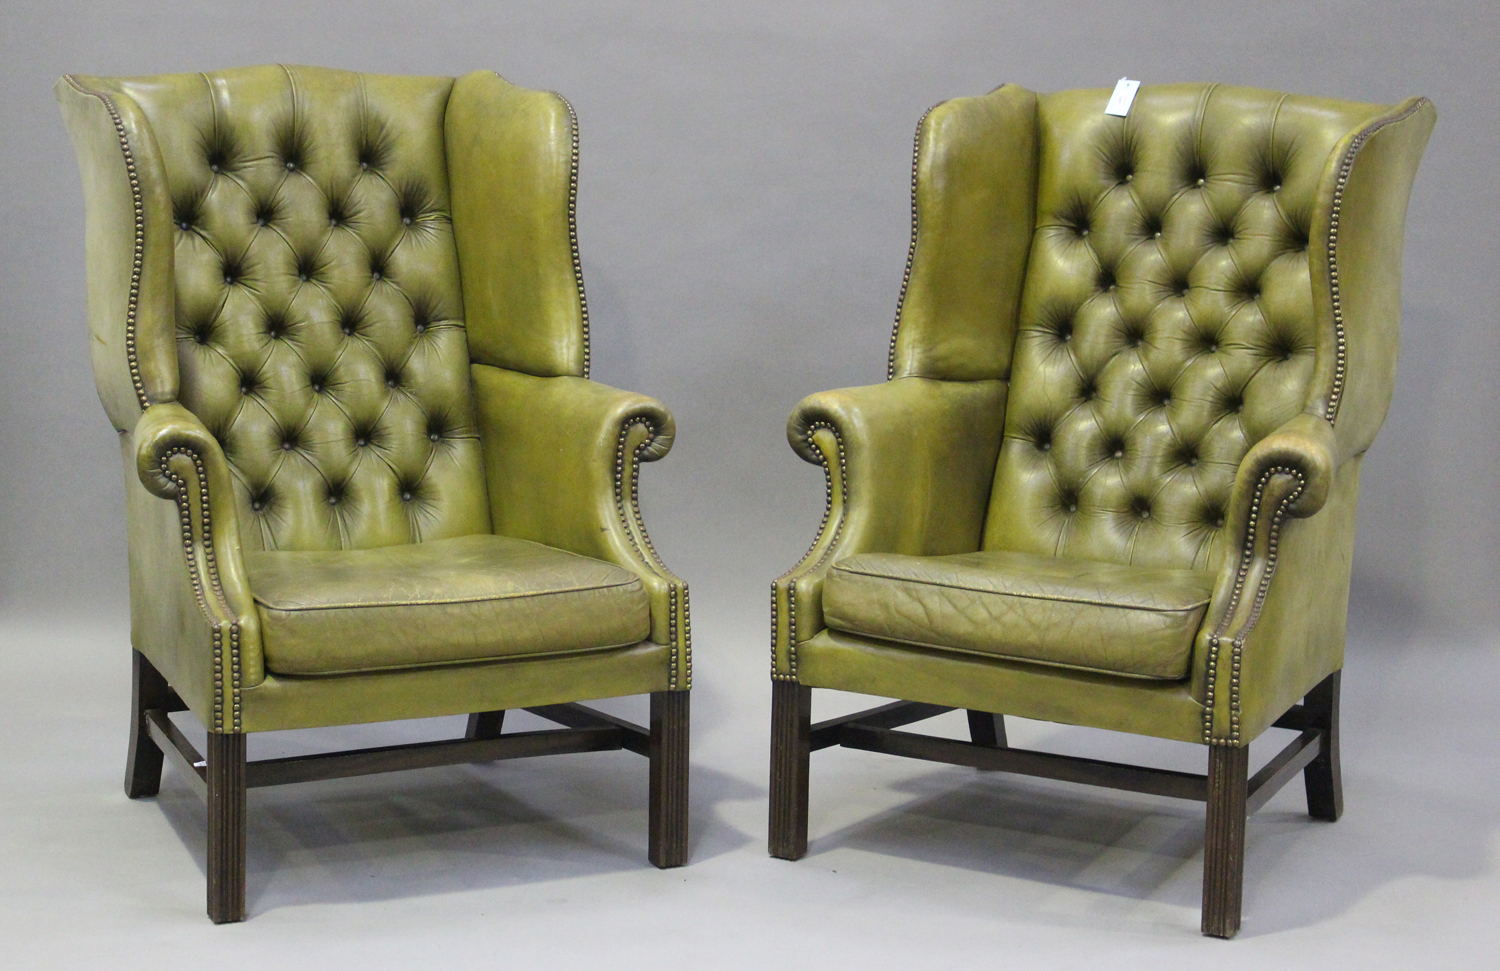 A pair of 20th century George III style wing back armchairs, upholstered in buttoned green